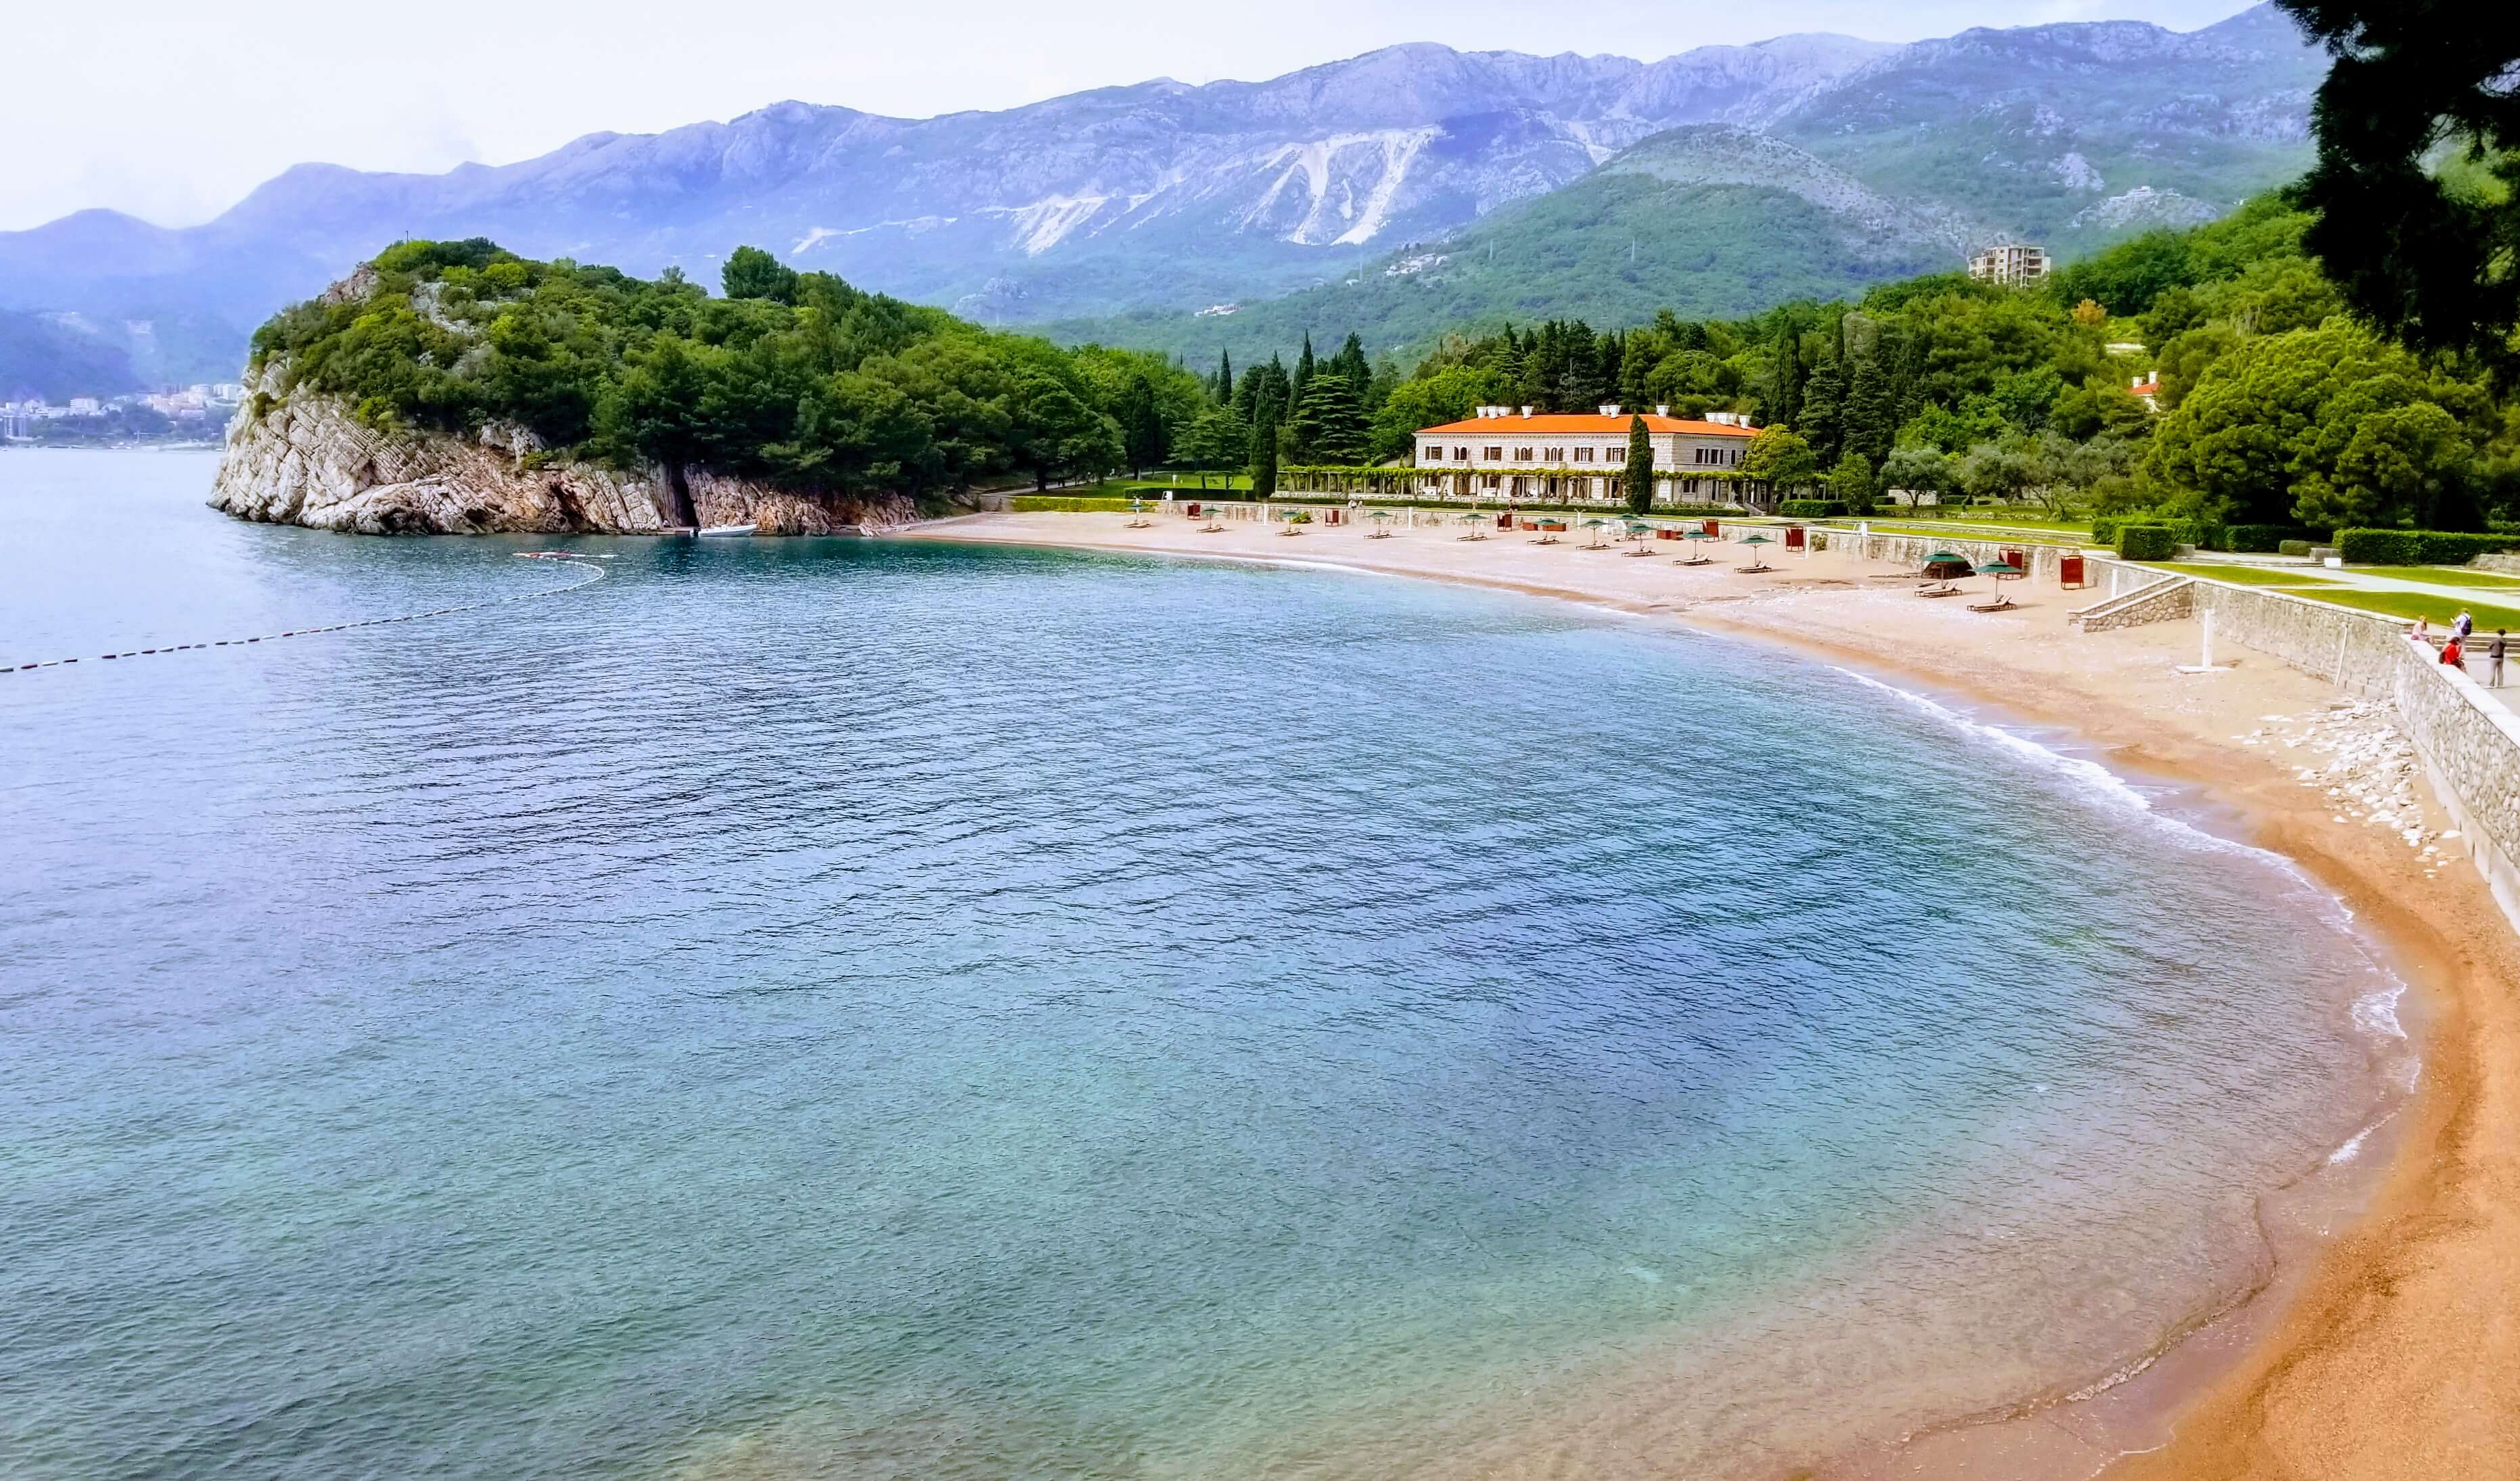 Sveti Stefan north beach - the water is turquoise